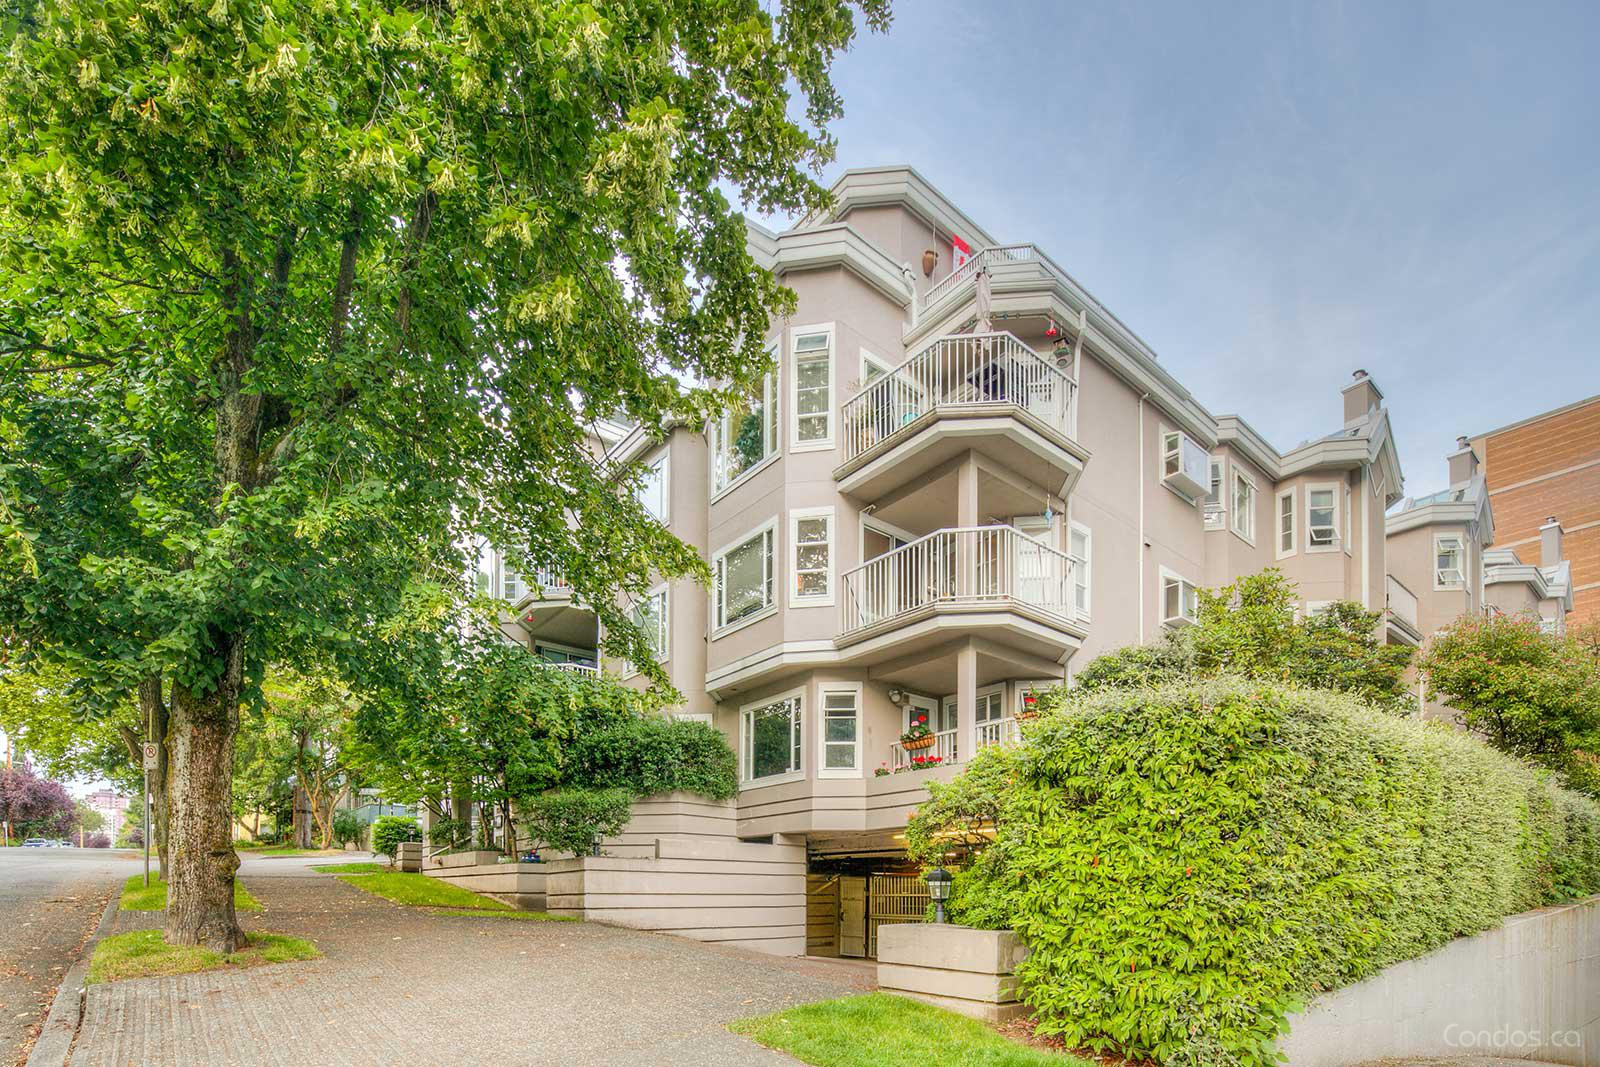 Linden House at 1280 Nicola St, Vancouver 0